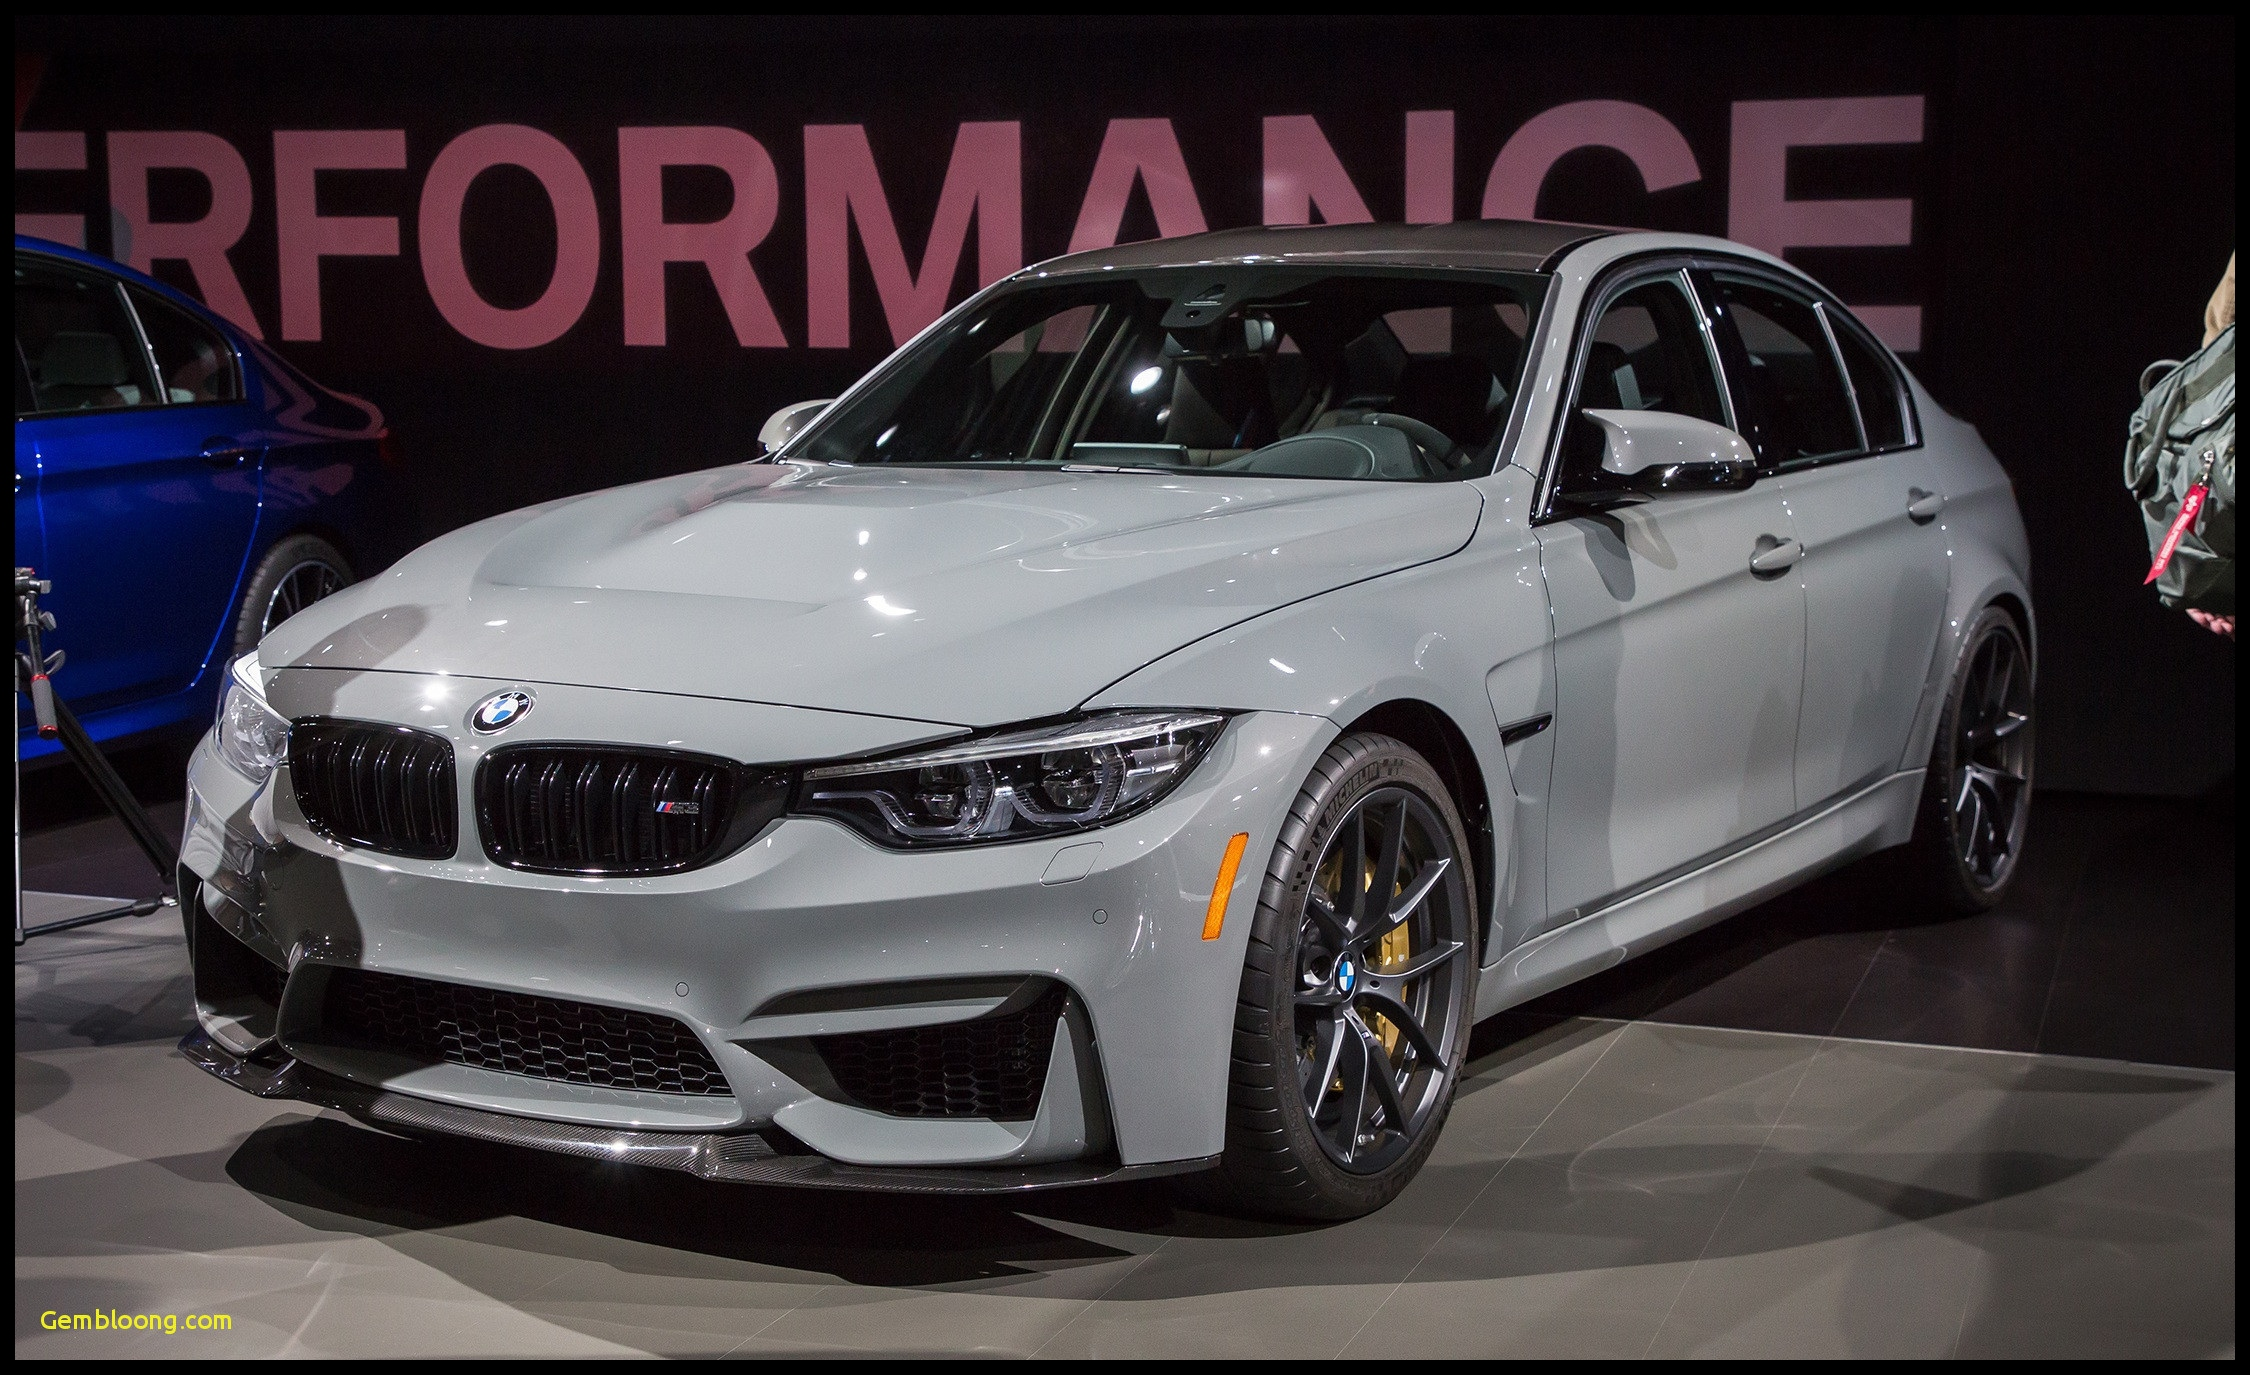 Bmw 5 2019 Price and Review M3 2019 M3 2019 2019 Bmw 5 Series Bmw 5